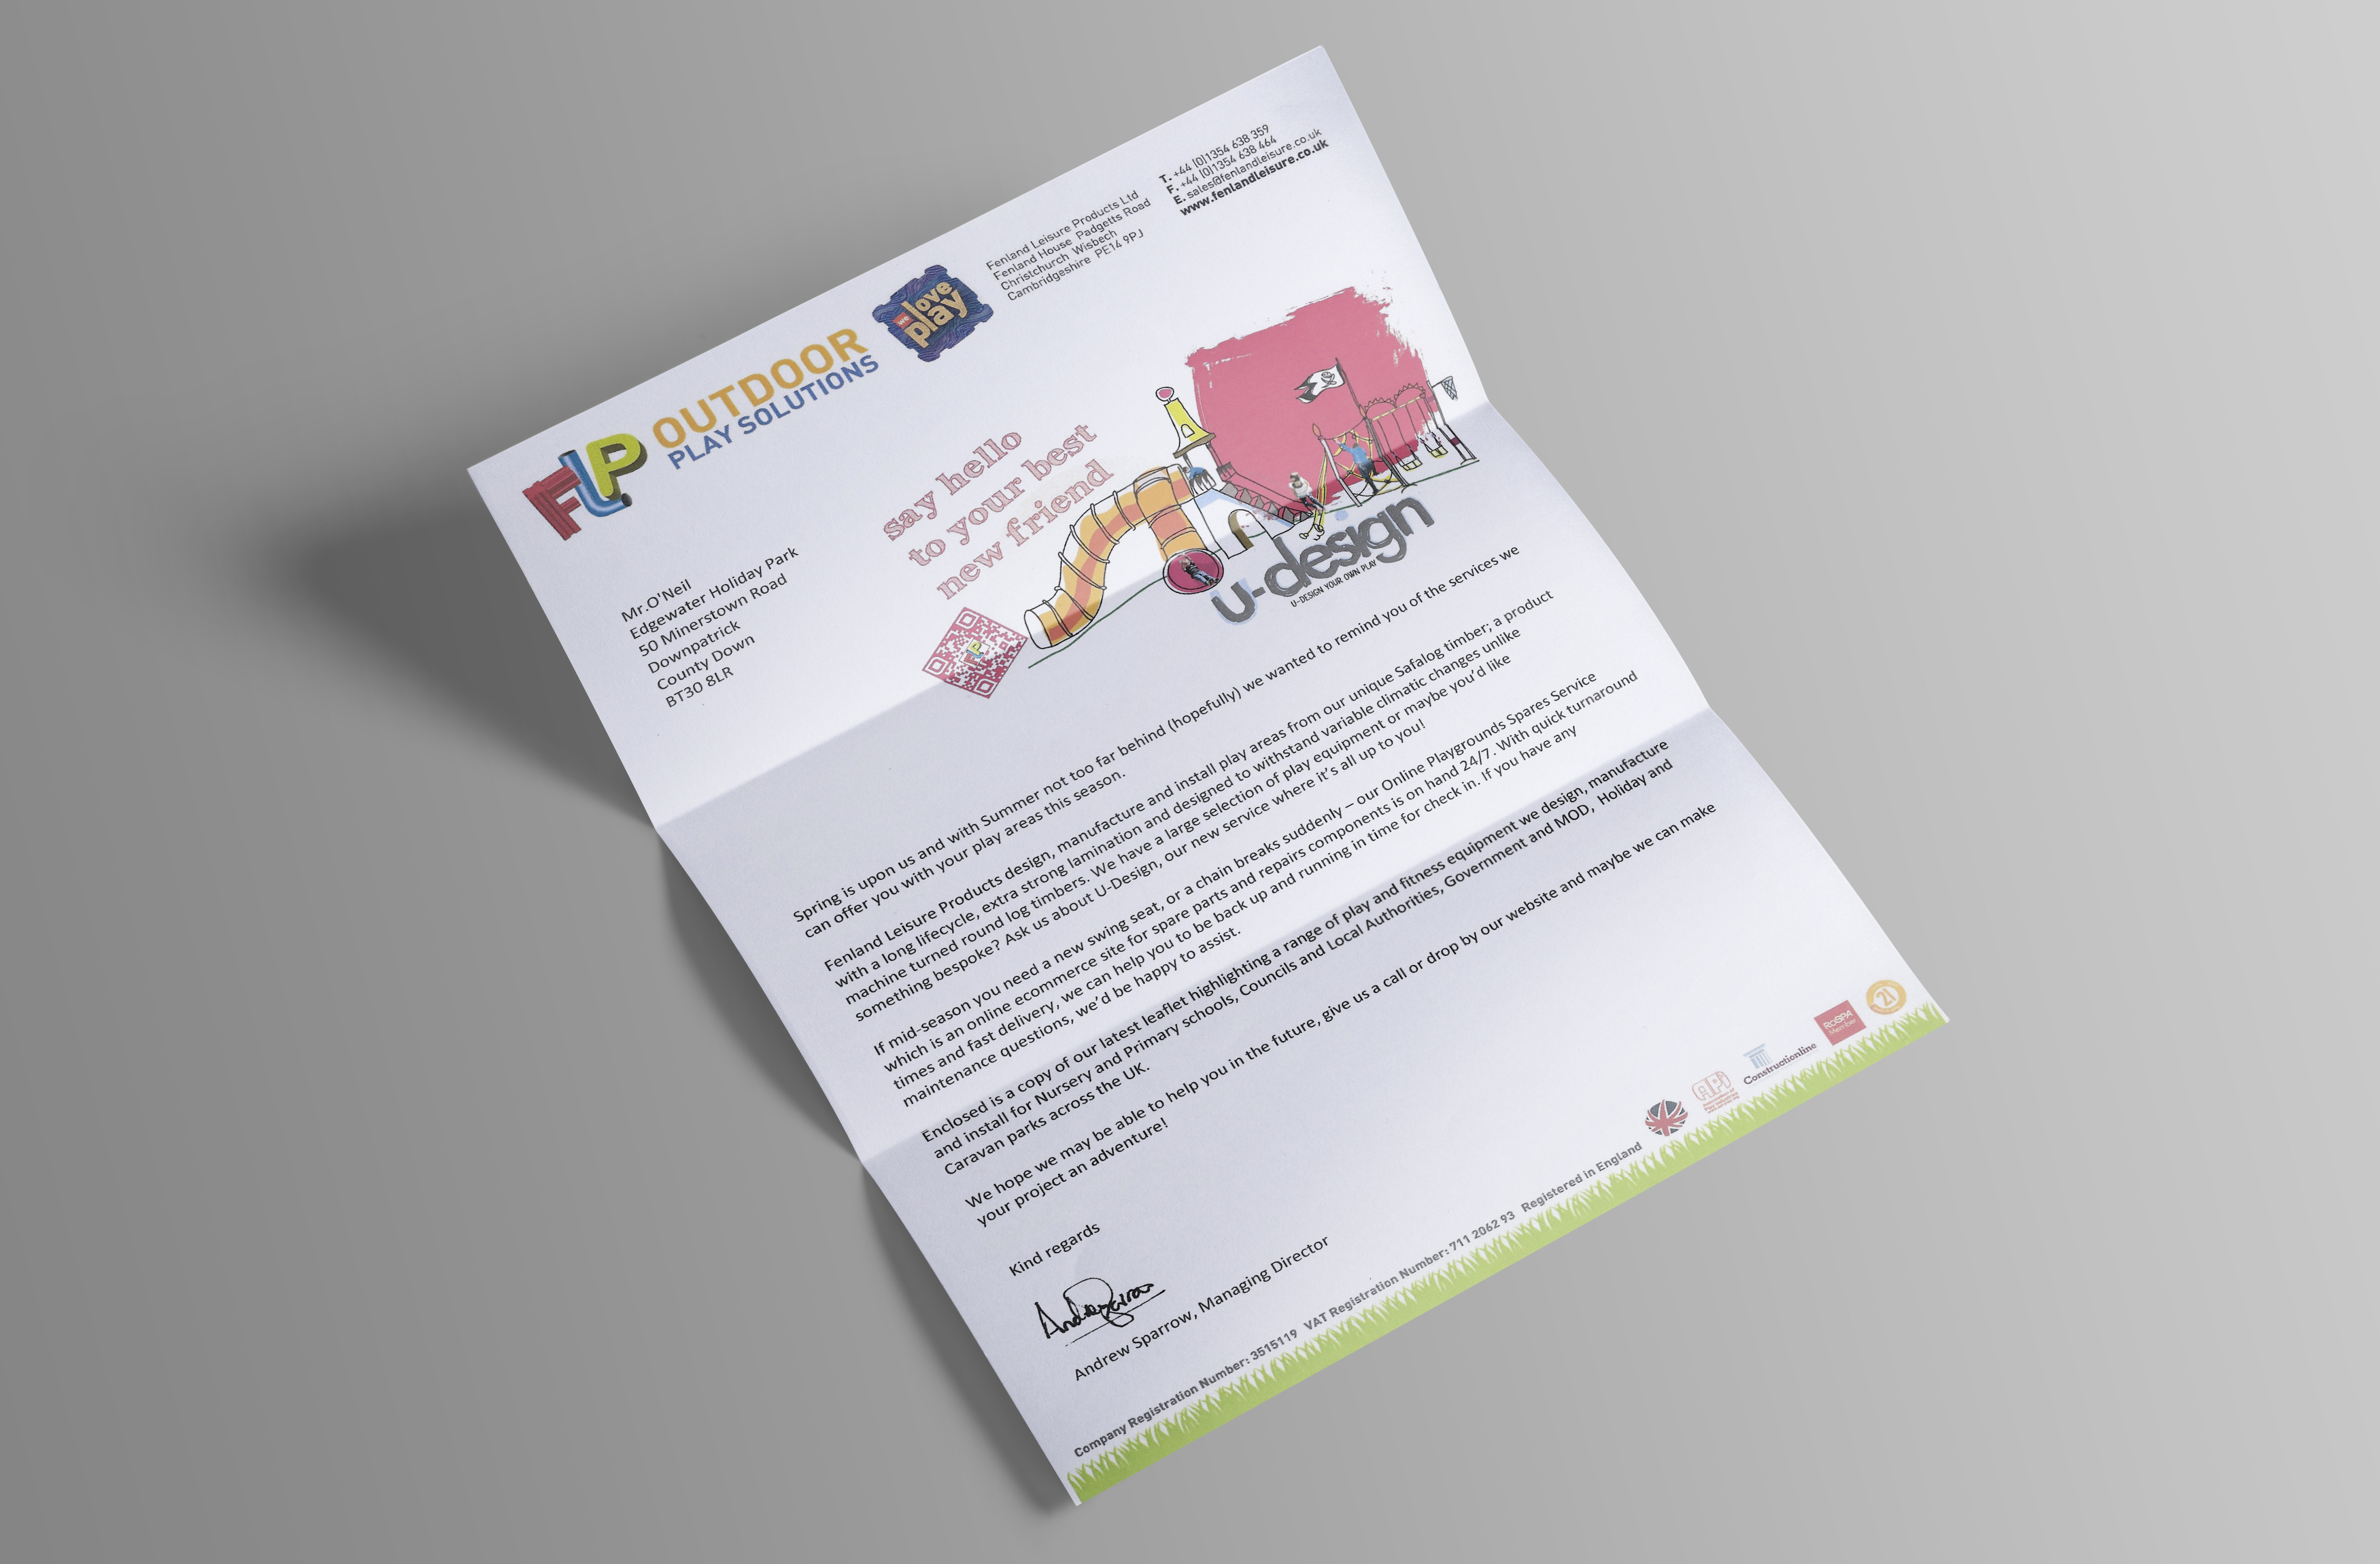 FLP Sales Letter Design